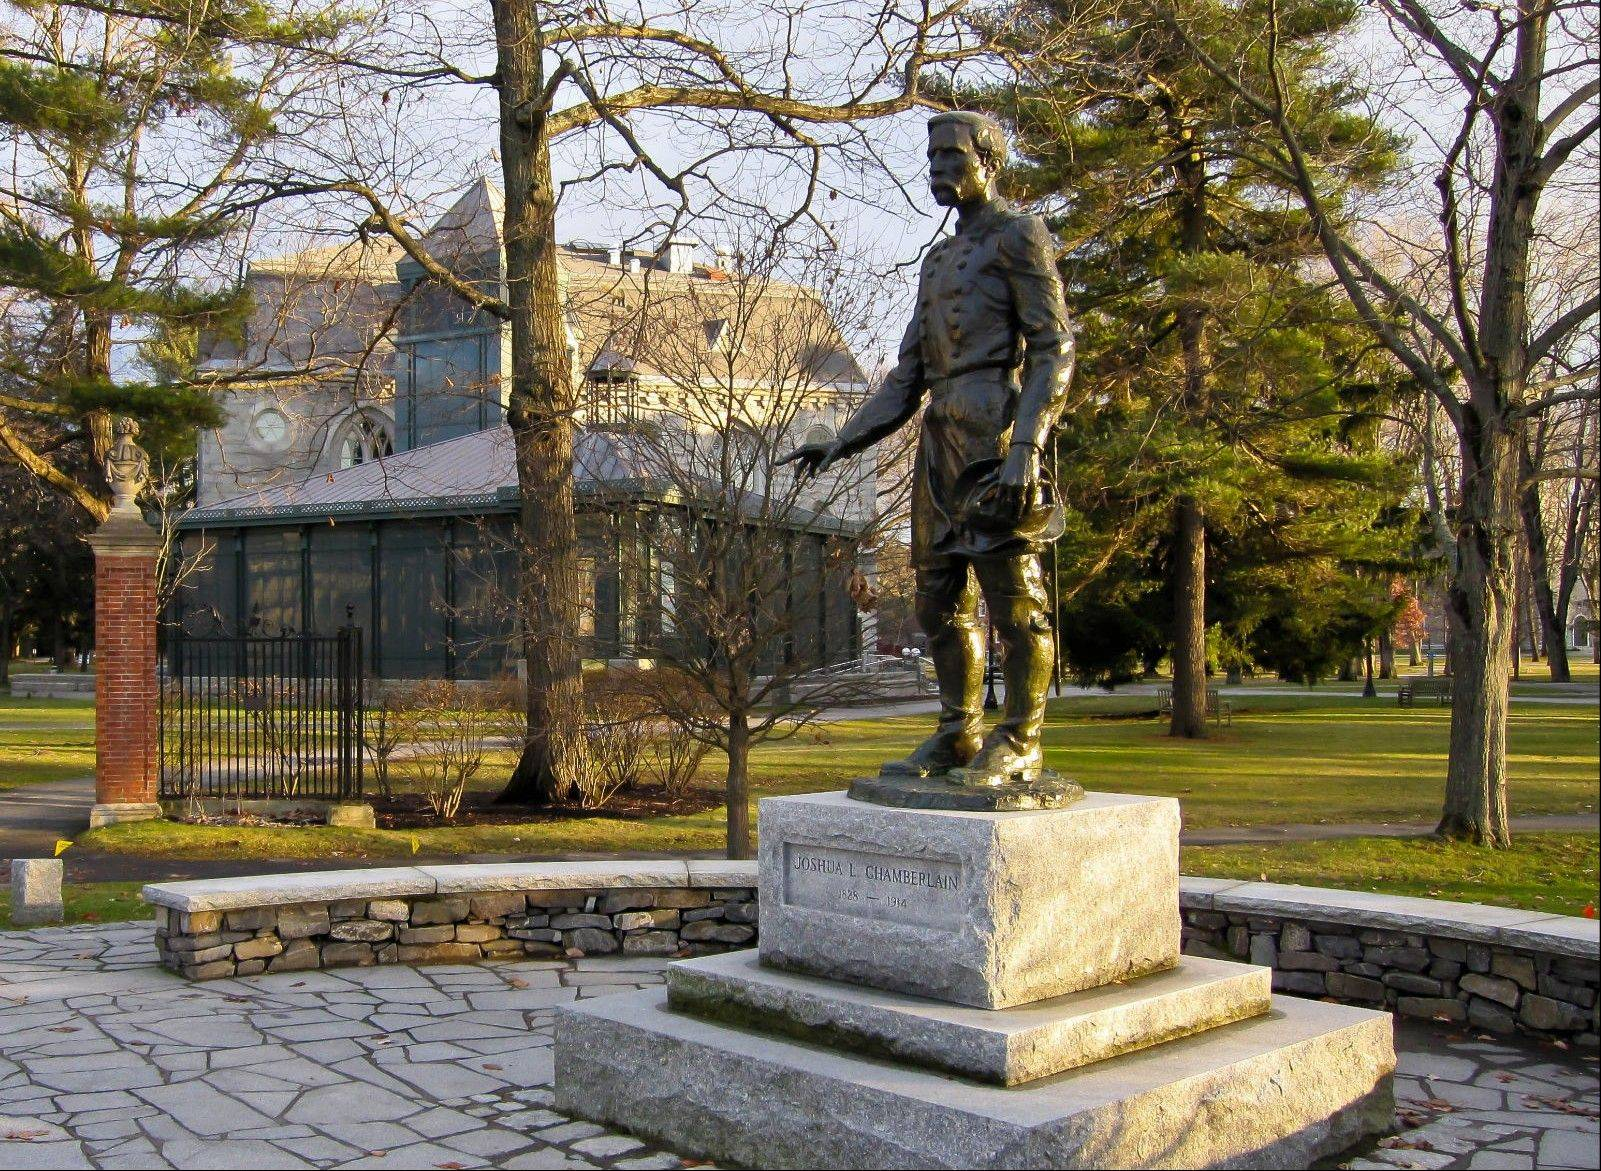 A statue of Joshua Chamberlain in Brunswick, Maine, is located on the grounds of the Bowdoin College campus. Chamberlain, a graduate of Bowdoin College and a professor there, led the Union's defense of Little Round Top at the Battle of Gettysburg during the Civil War and accepted the Confederacy's surrender at Appomattox in Virginia in 1865.